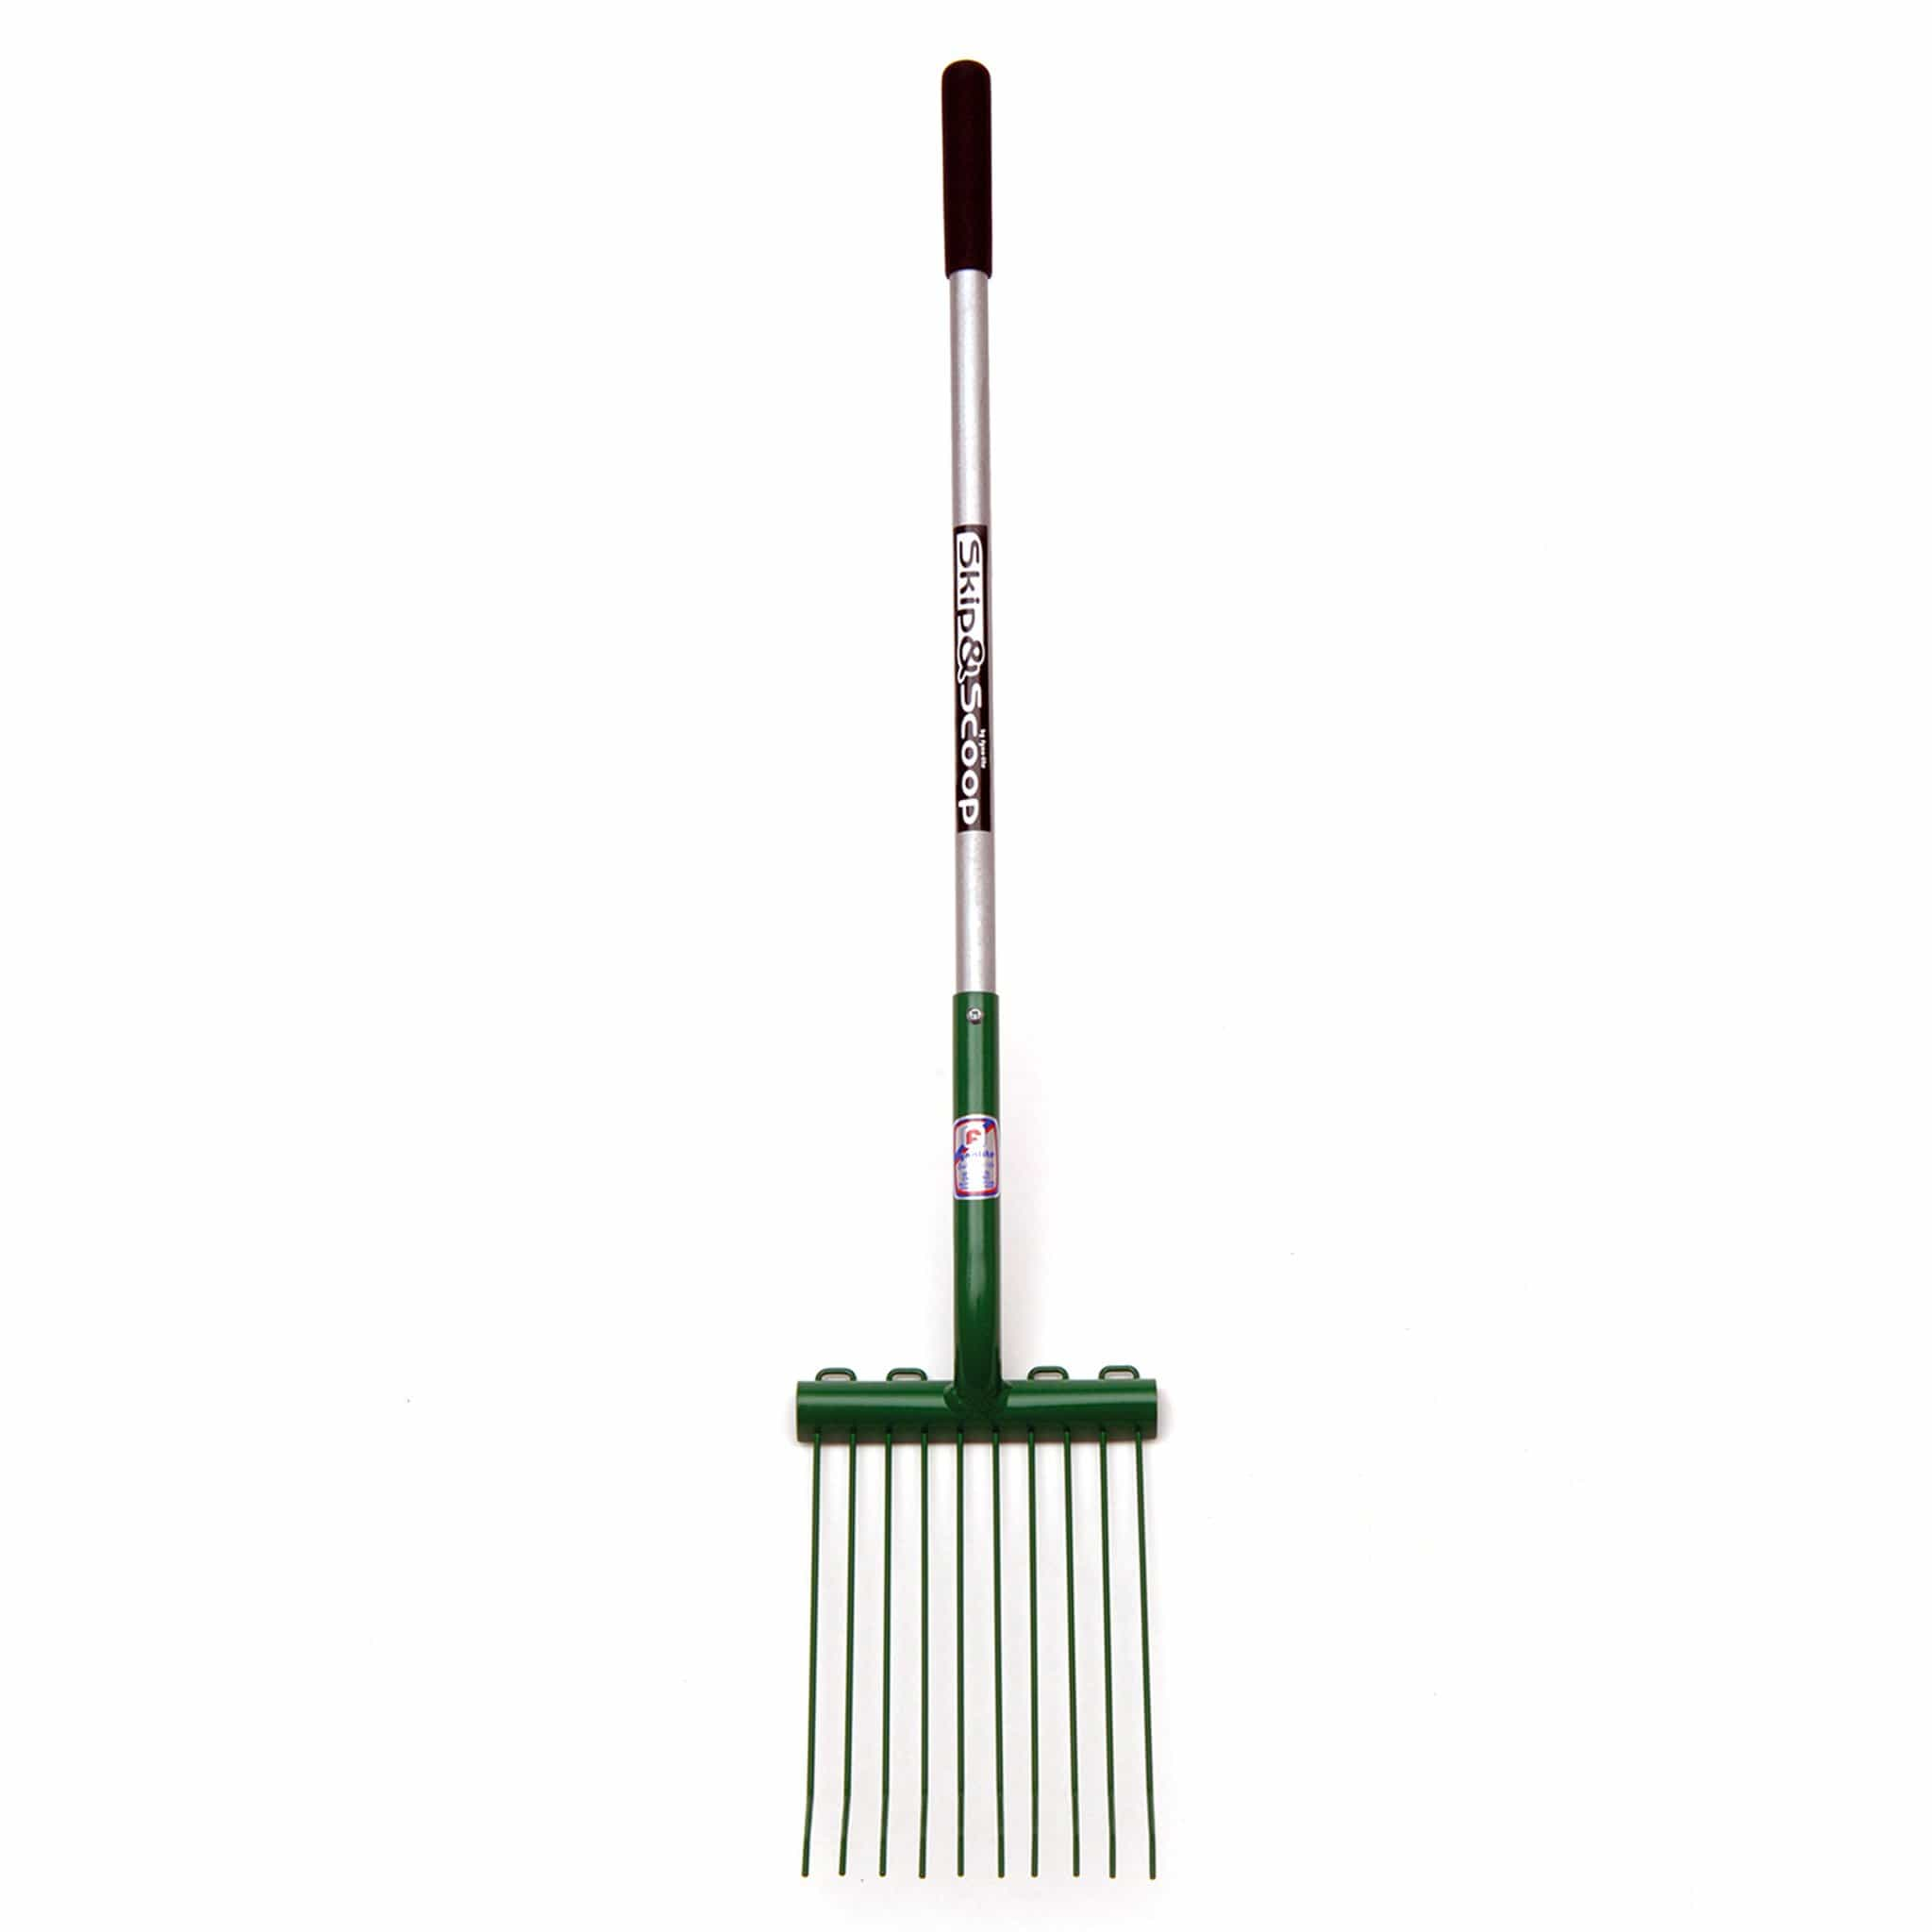 Fyna-Lite Skip and Scoop Spare Rake Green FYN0285.